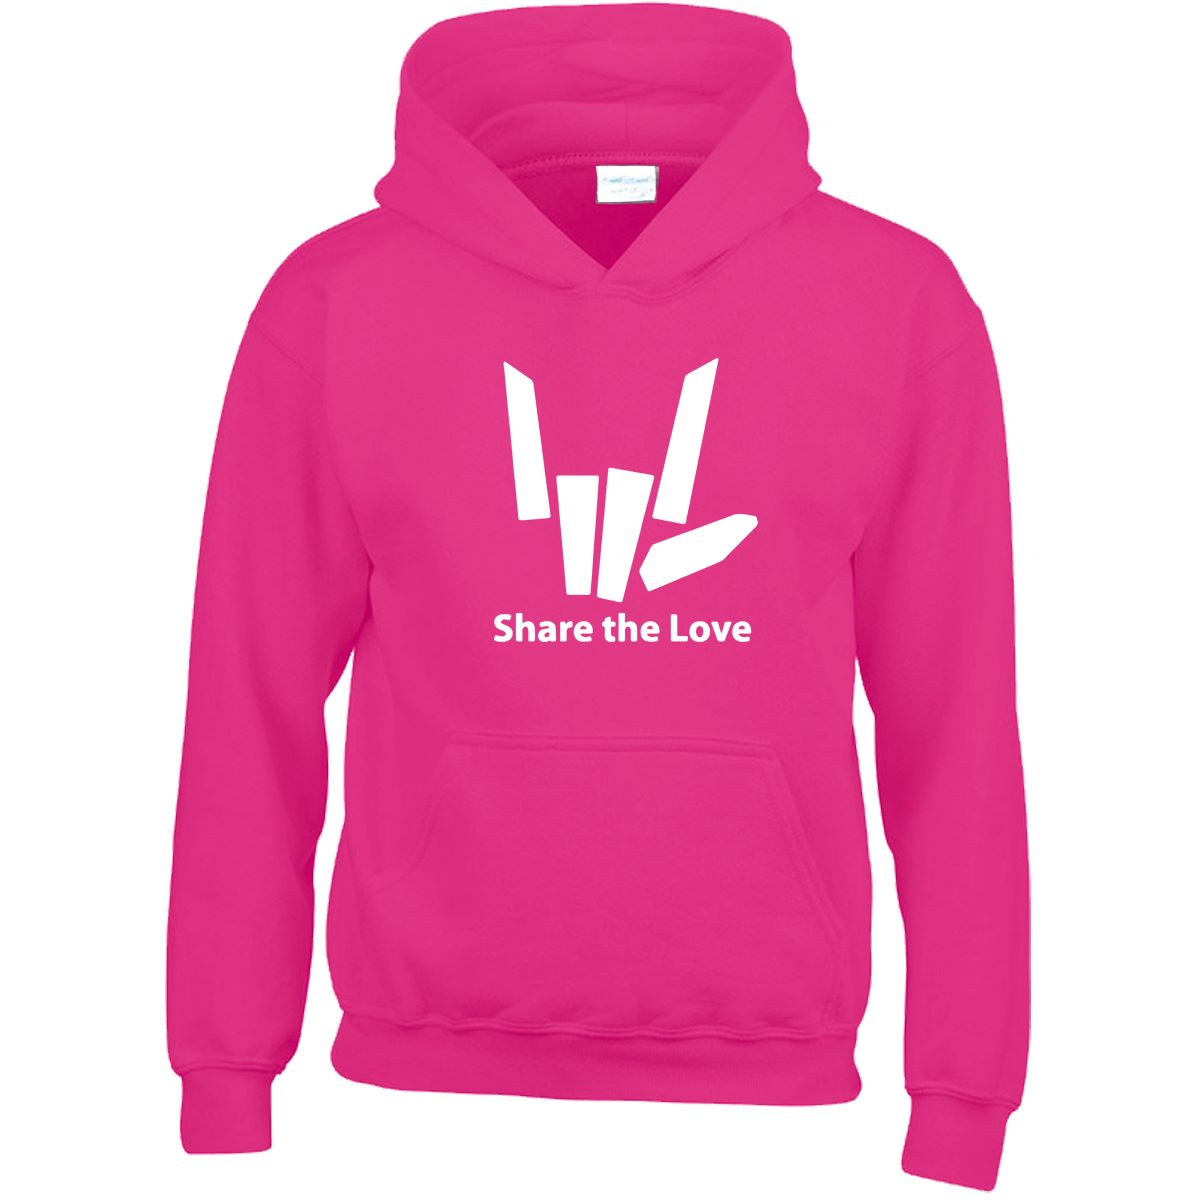 Share The love Kids Hoody youtuber YouTube Stephen Sharer Boys Girls Hood